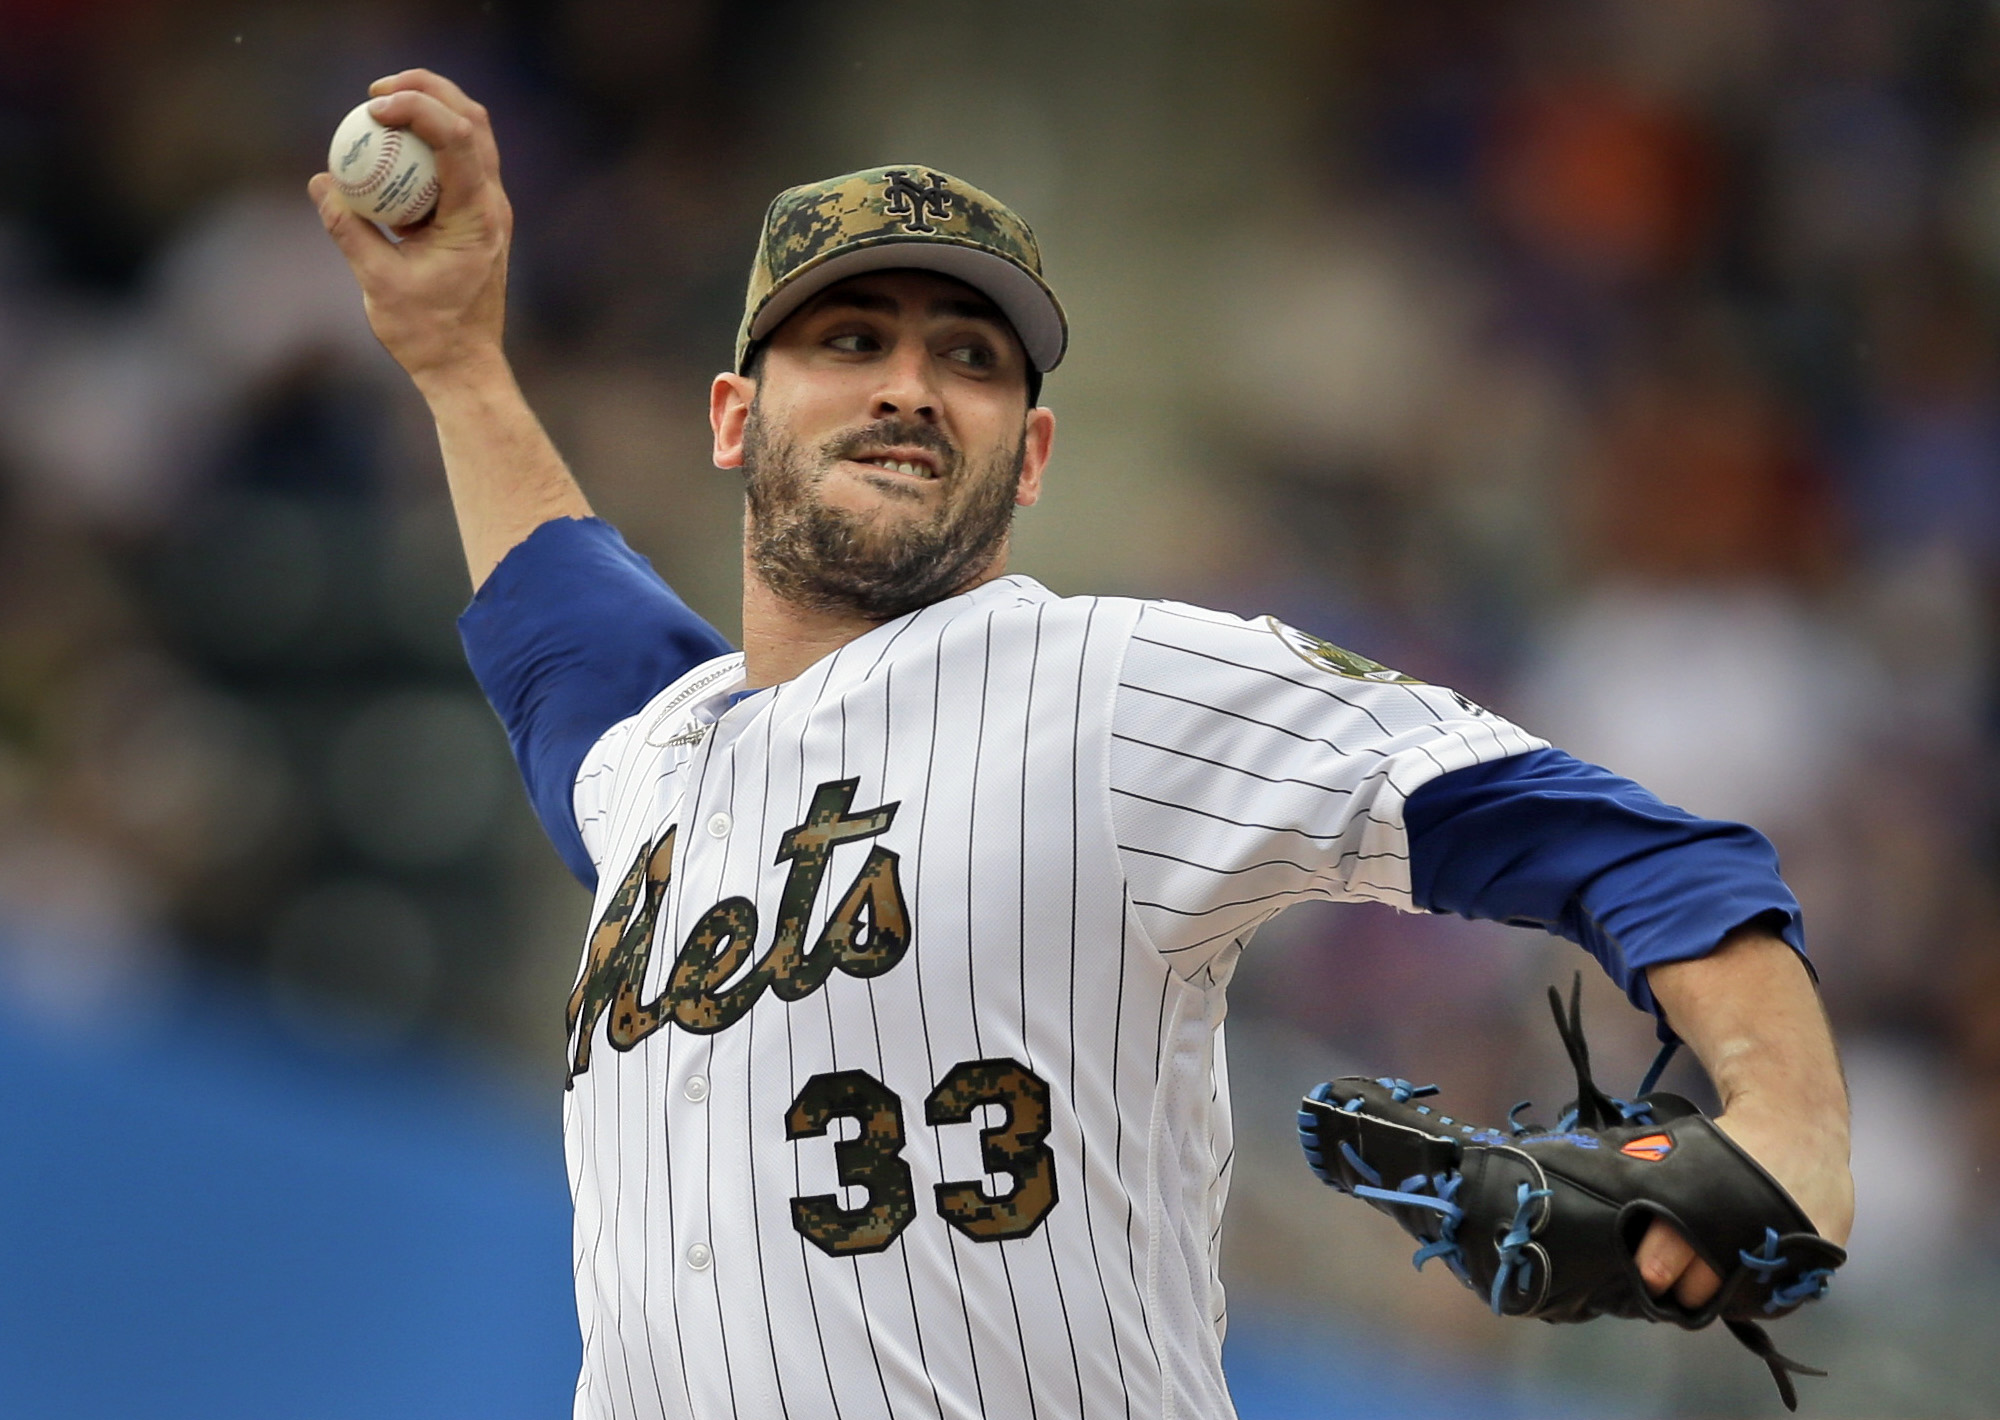 FILE - In this May 30, 2016, file photo, New York Mets starting pitcher Matt Harvey throws during the first inning of a baseball game against the Chicago White Sox in New York. Harvey (4-10) starts Monday, July 4, 2016, for the Mets against the Miami Marl